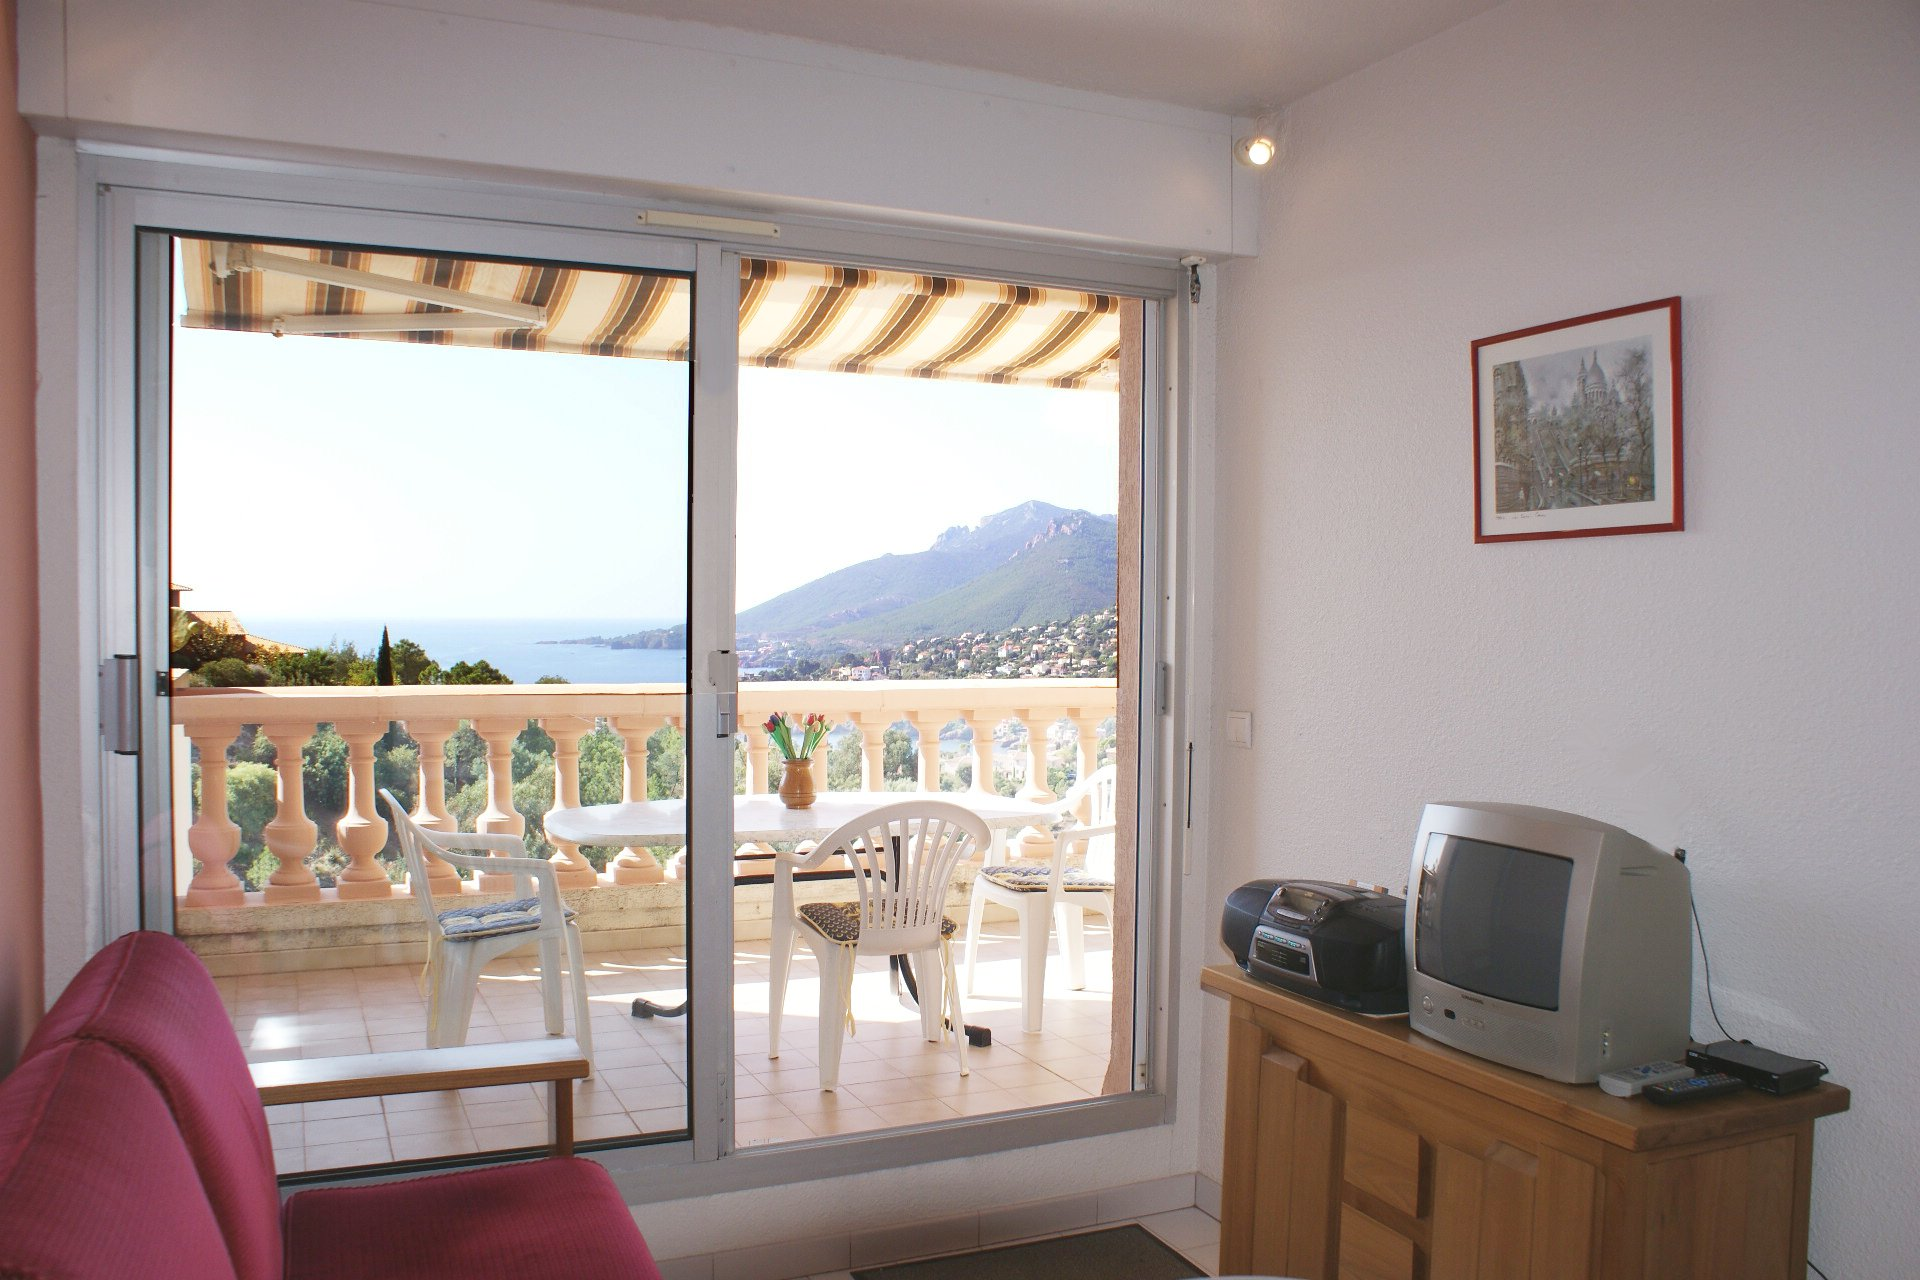 1 bedroom with sea view in perfect condition